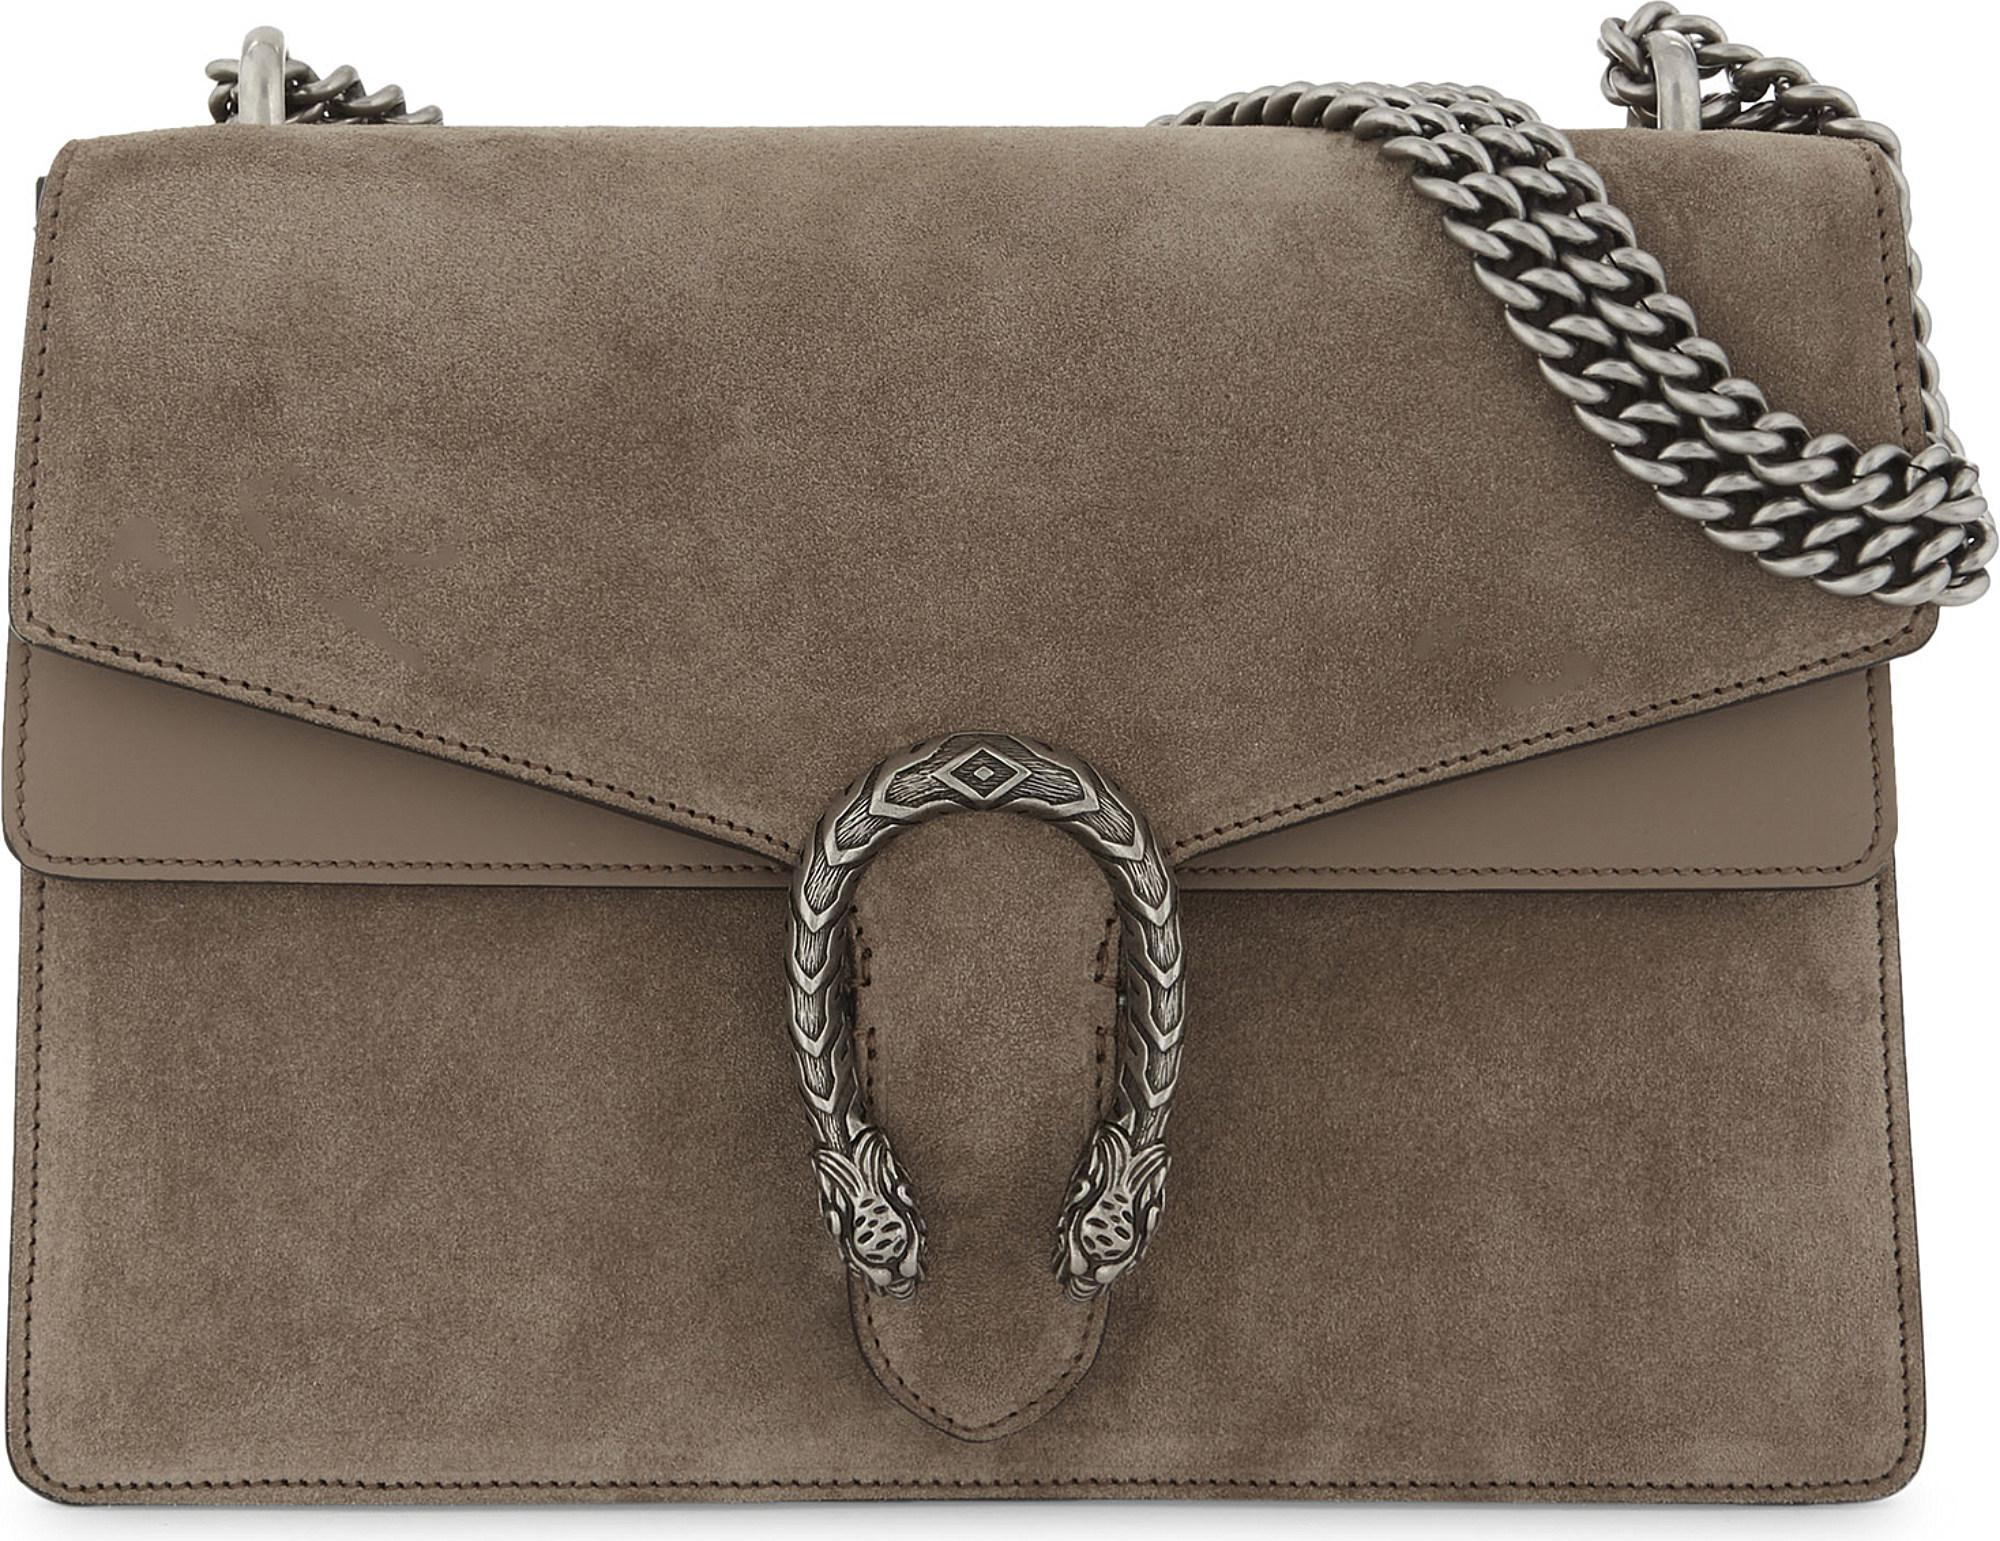 Gucci Dionysus Medium Suede Shoulder Bag in Taupe (Green) , Lyst